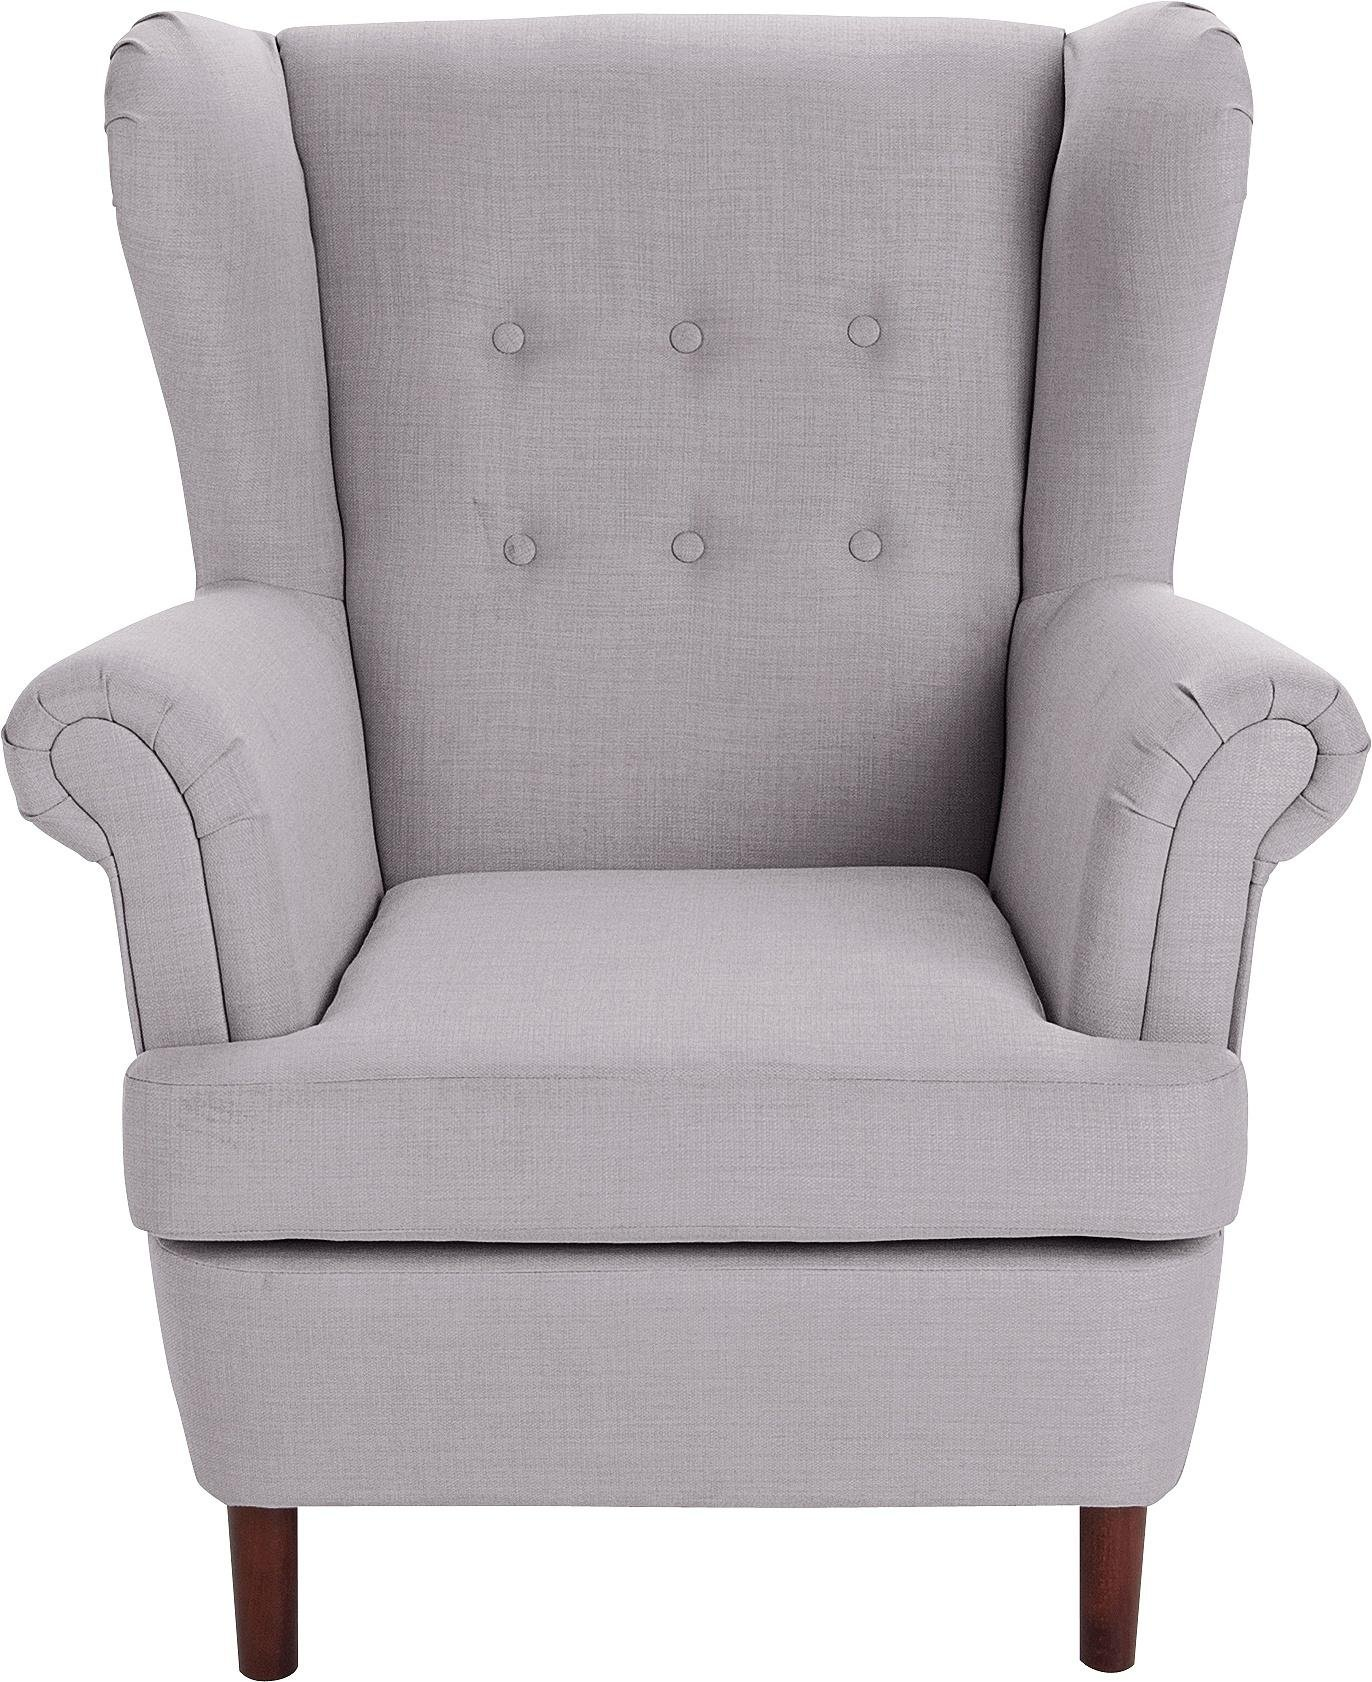 light grey chair wooden chairs for restaurant buy argos home martha fabric wingback